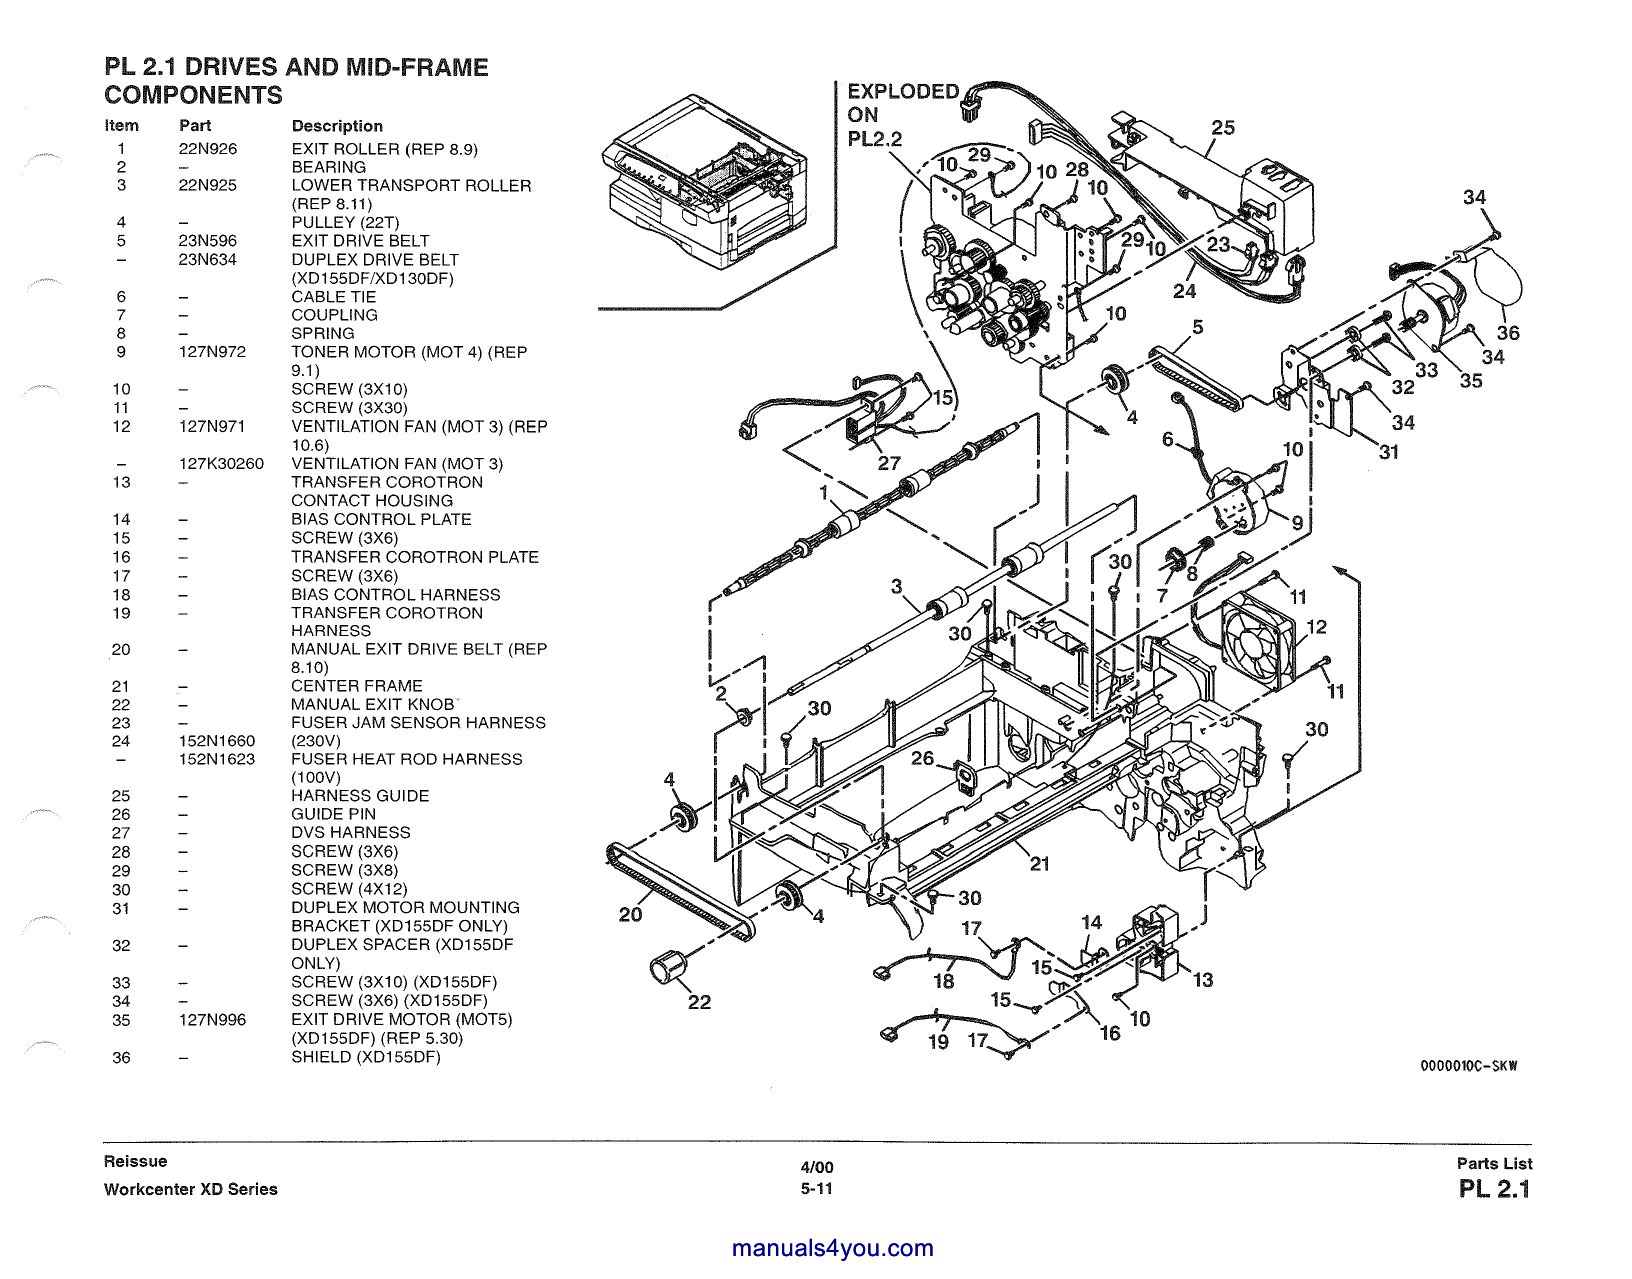 Xerox WorkCentre XD Series Parts List and Service Manual-5